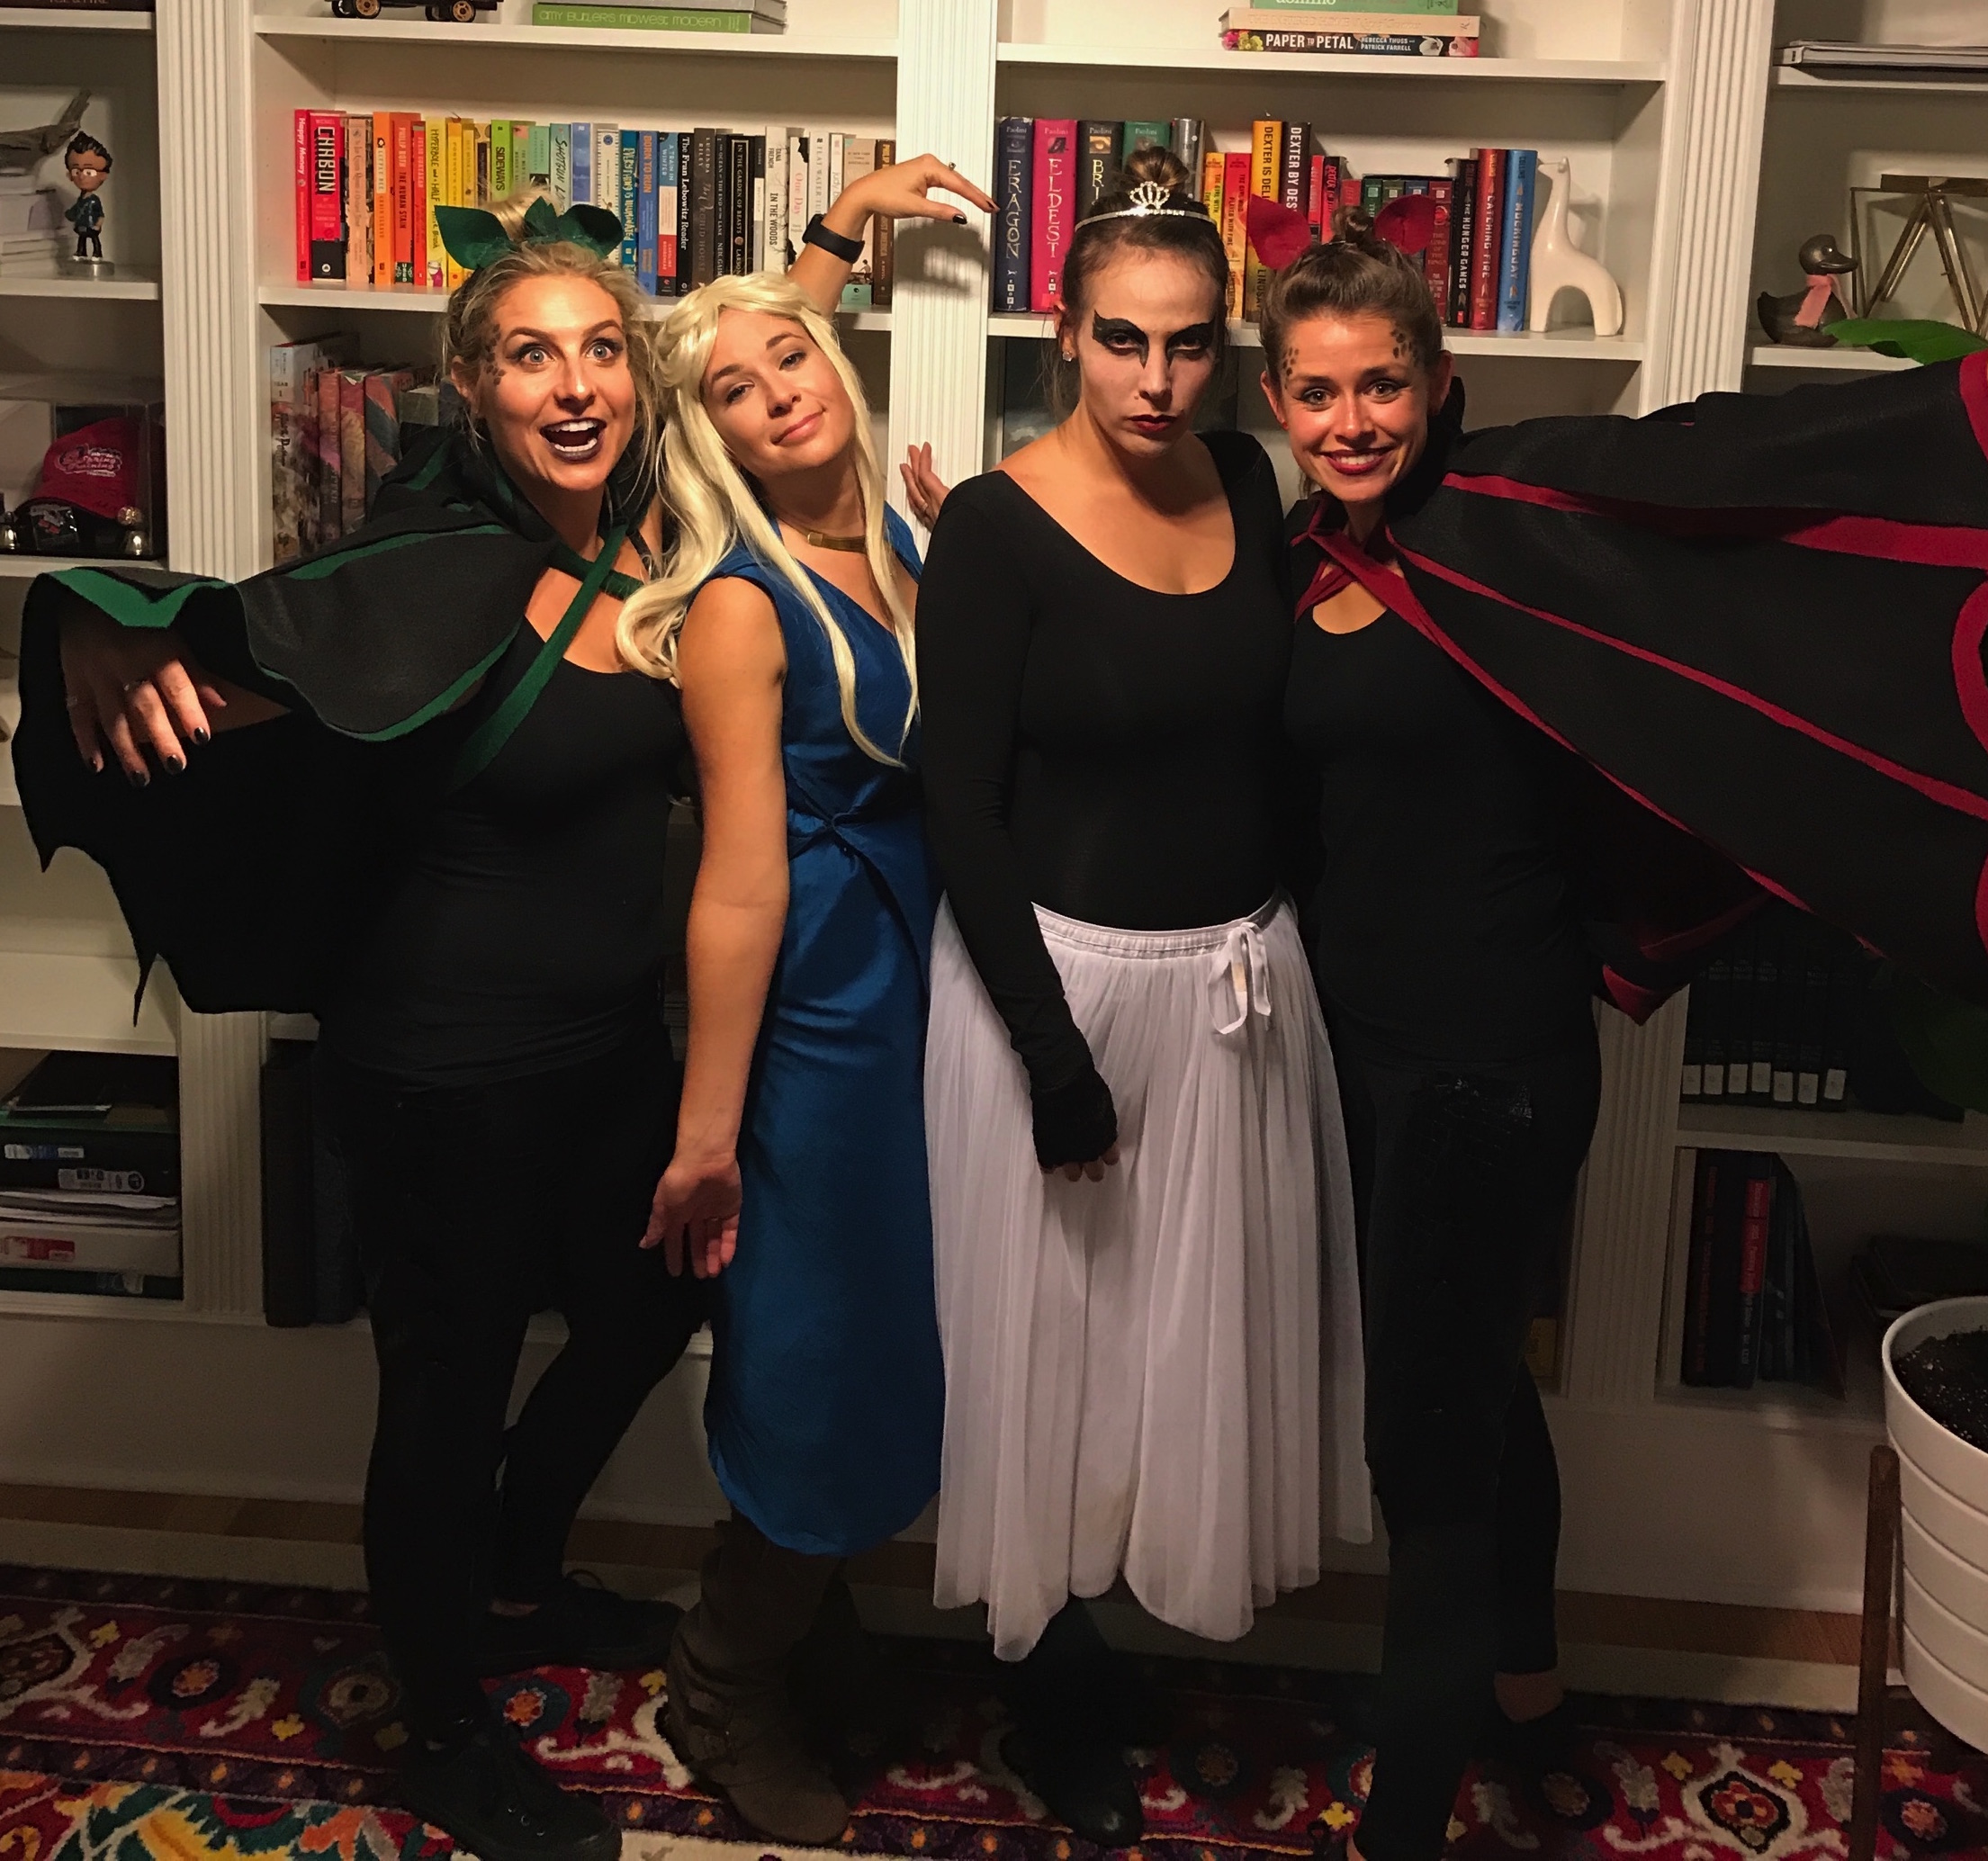 This weekend's Halloween Costumes. Daenerys and her dragons with a black swan.